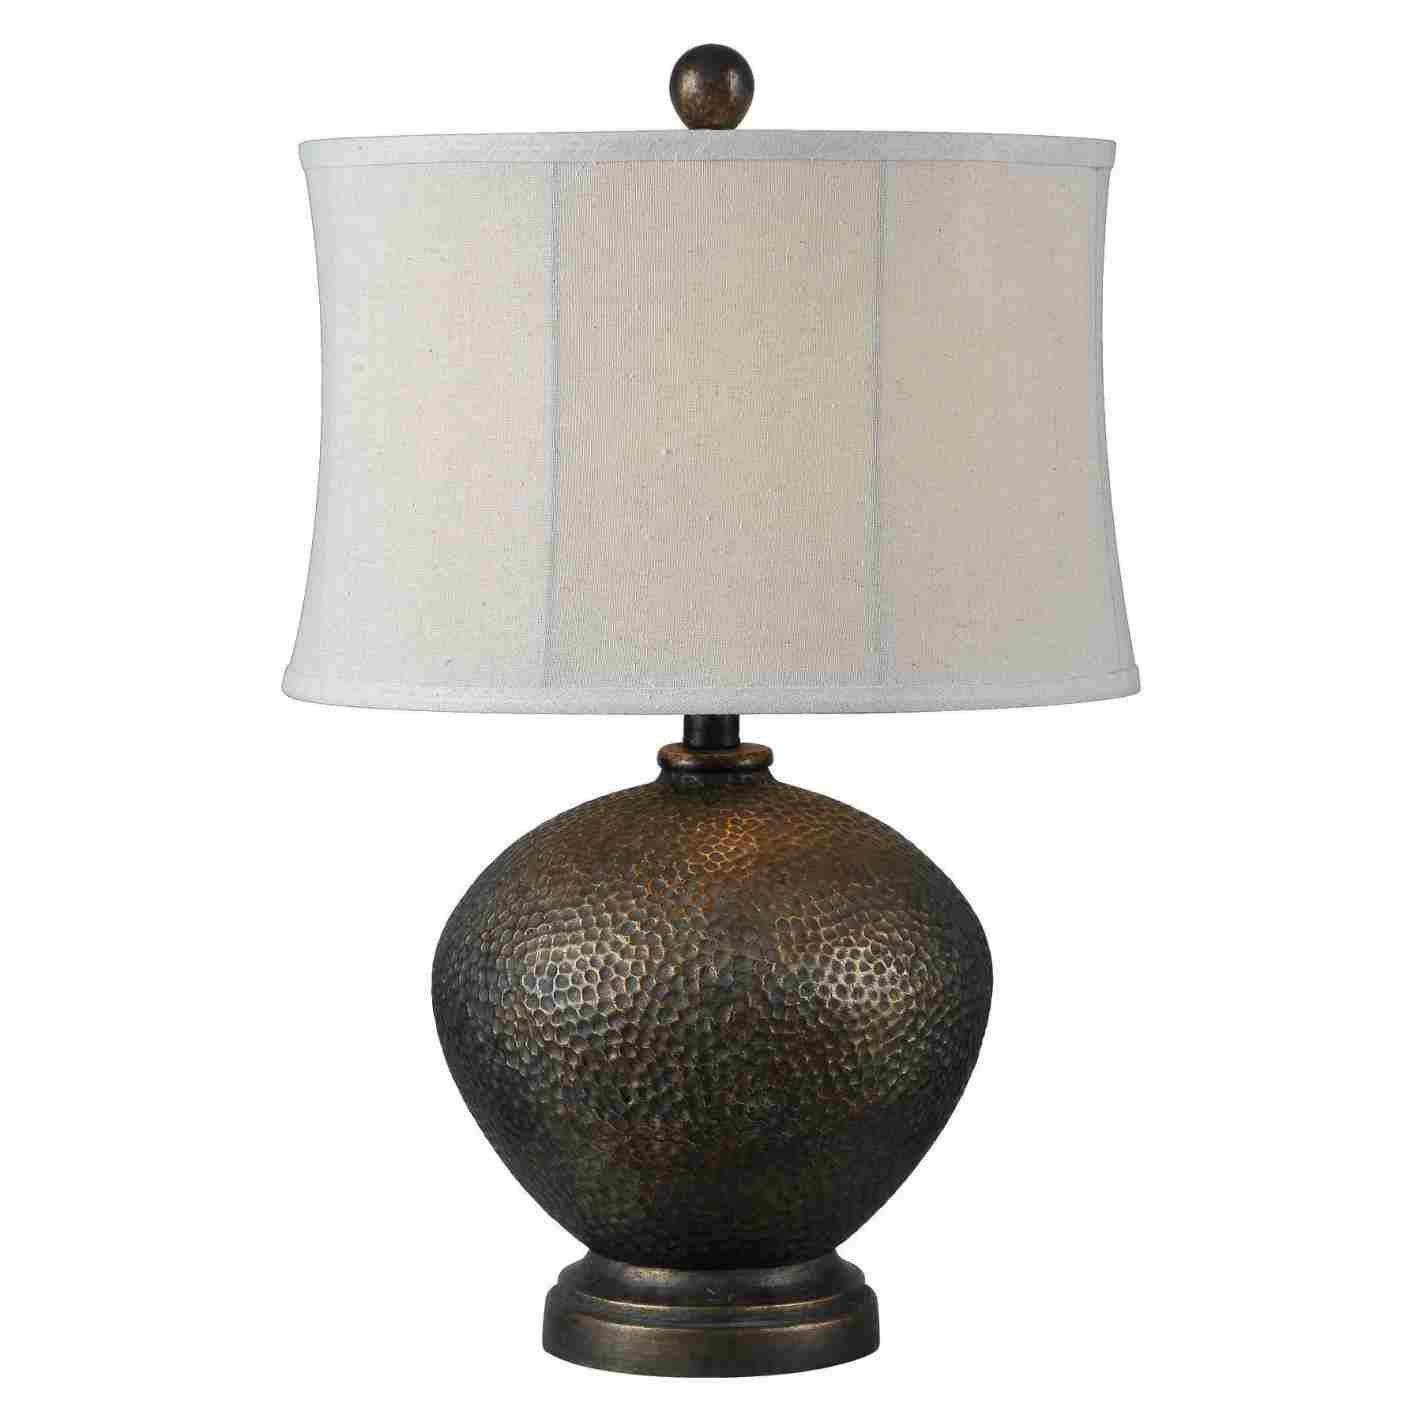 Fred Meyer Table Lamps Lamp Ideas Site